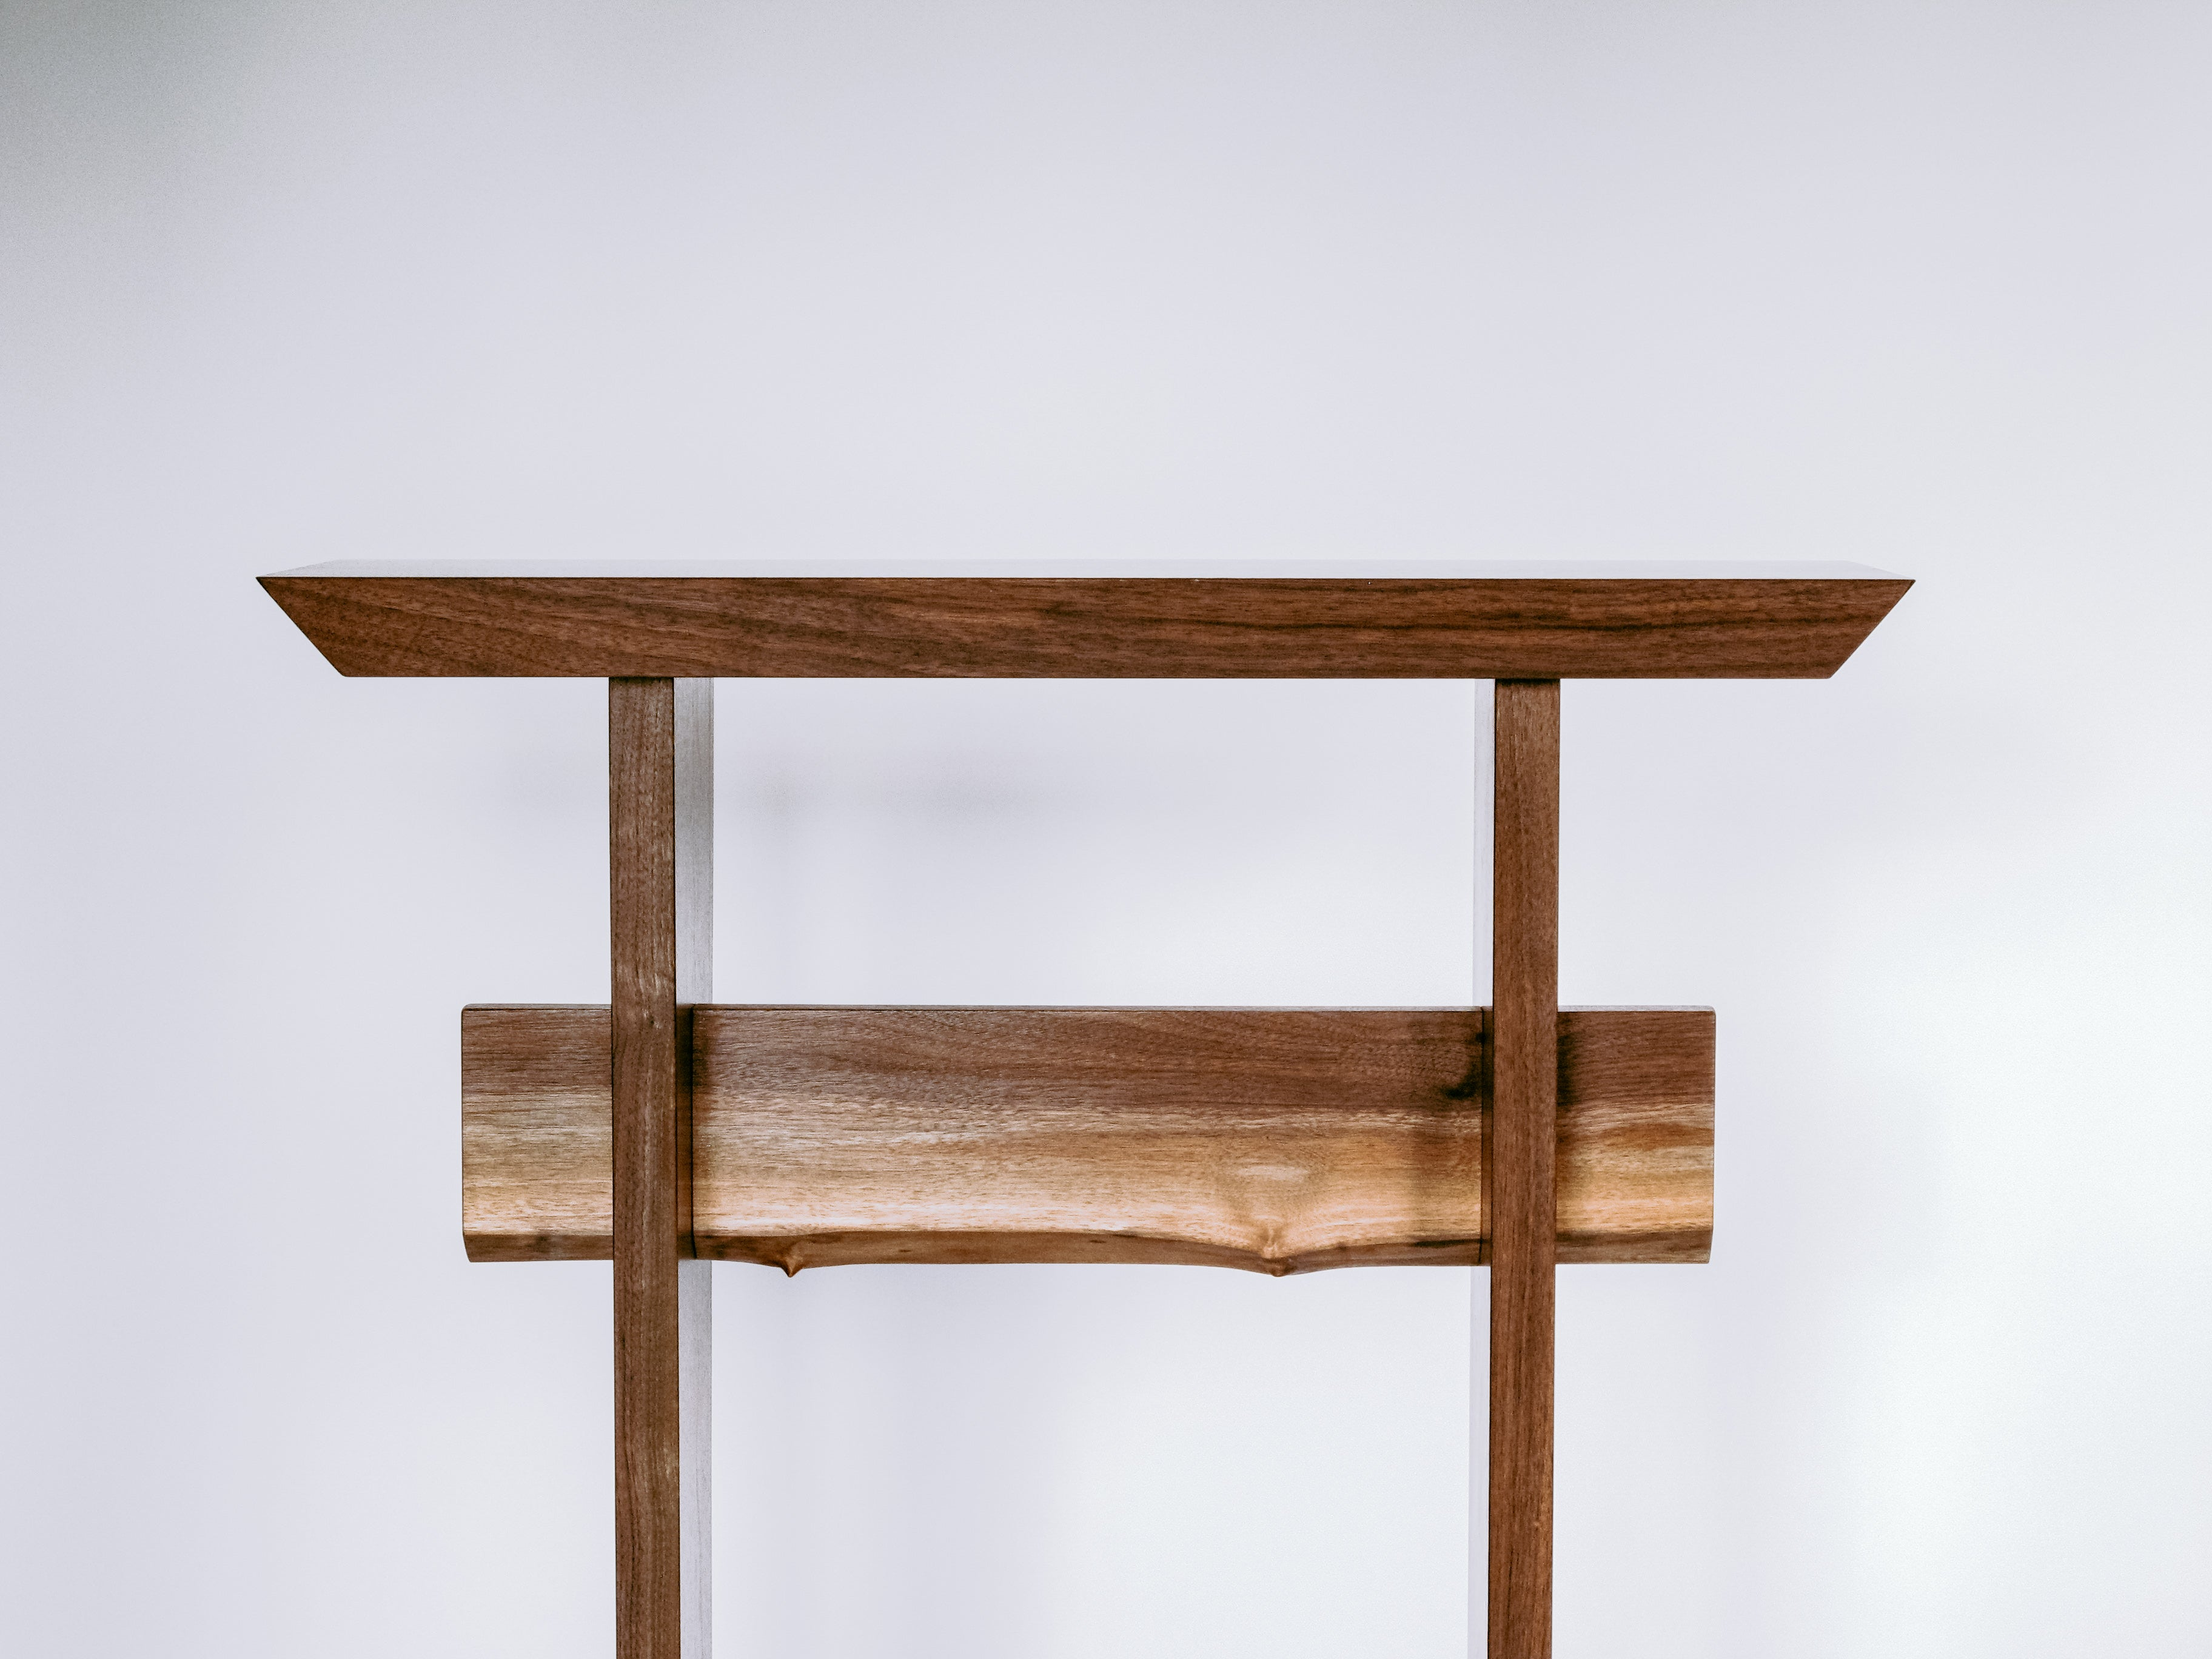 solid walnut console table - modern zen furniture styling